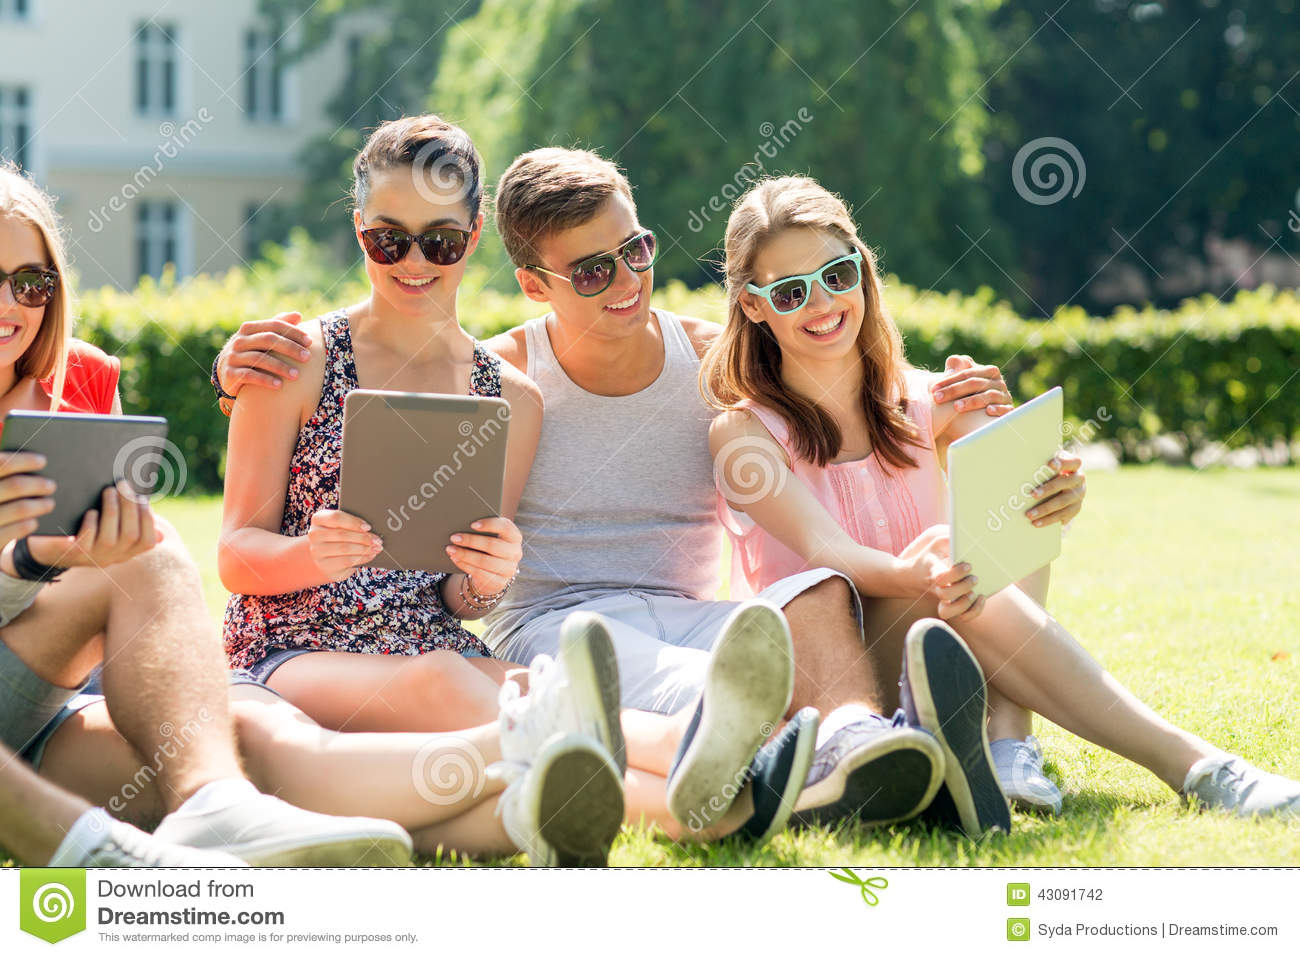 Download Smiling Friends With Tablet Pc Computers In Park Stock Photo - Image of making, friendship: 43091742